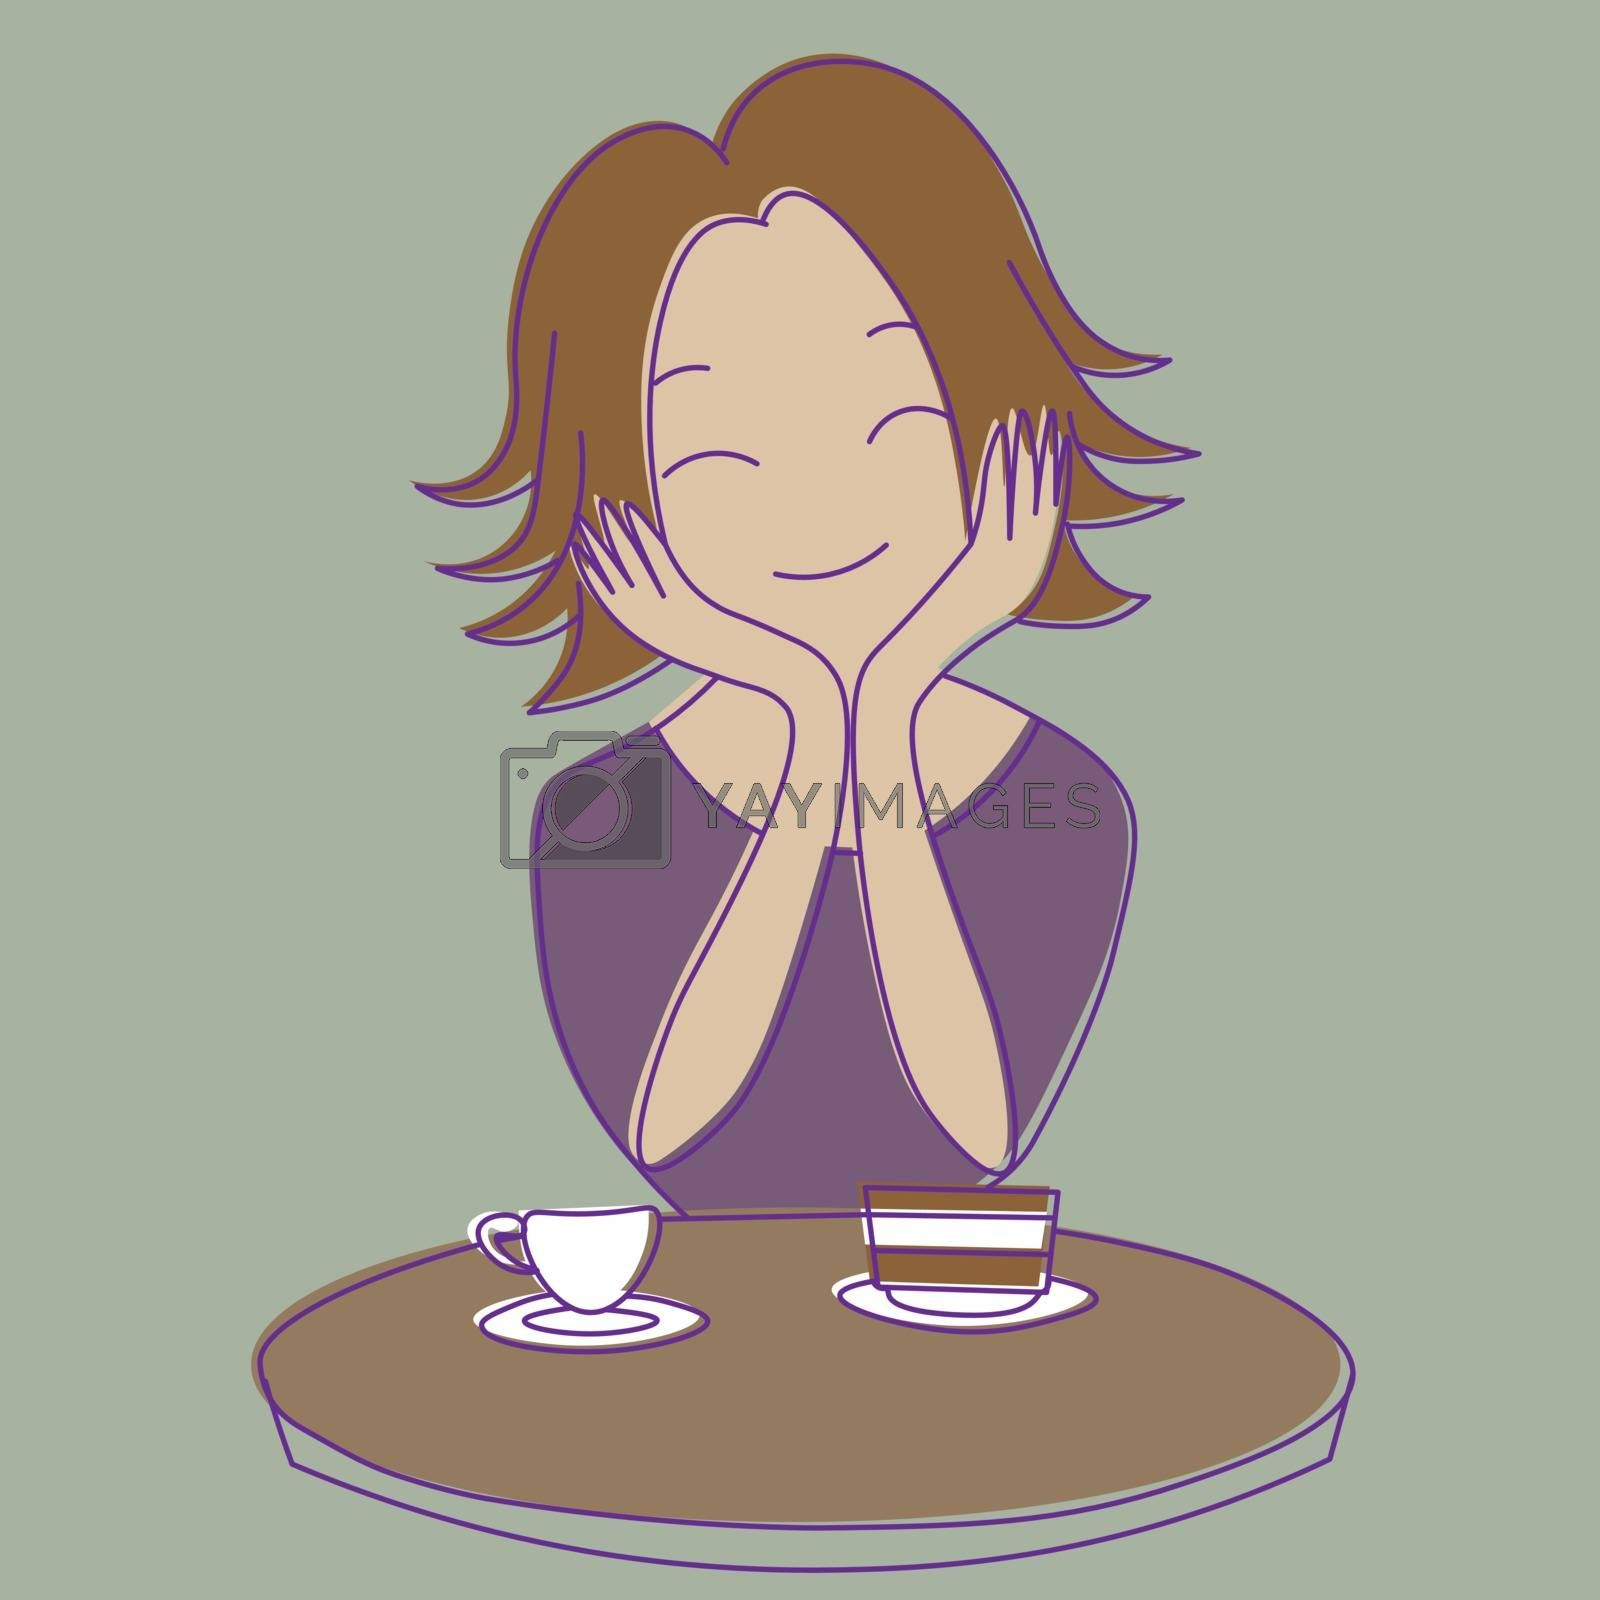 Cute cartoon happy girl with short hair sitting at the table with cake and cup of tea or coffee